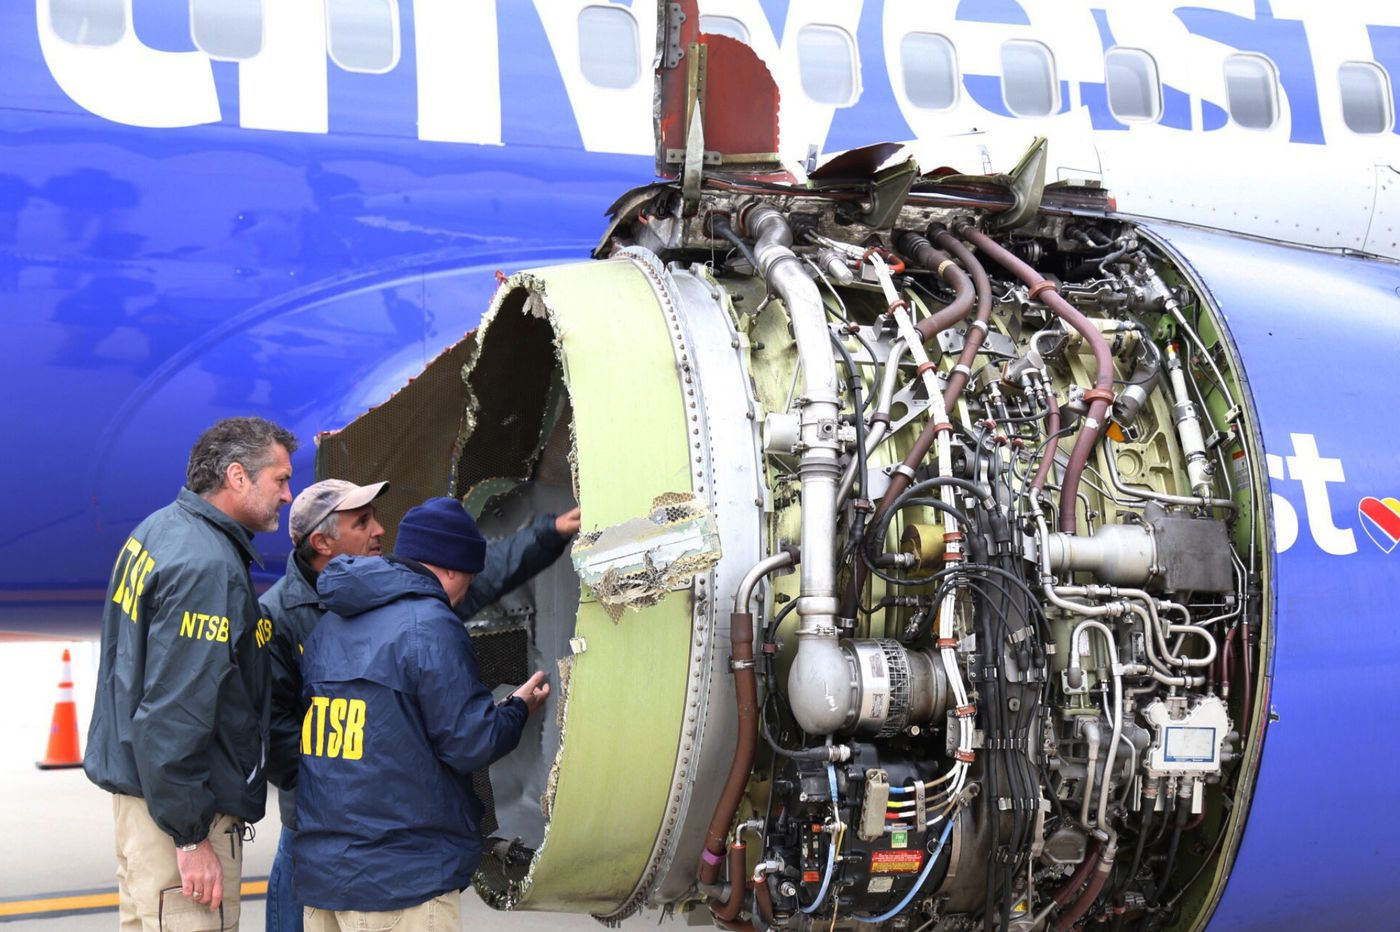 Crack that caused a fatal Southwest engine failure was missed six